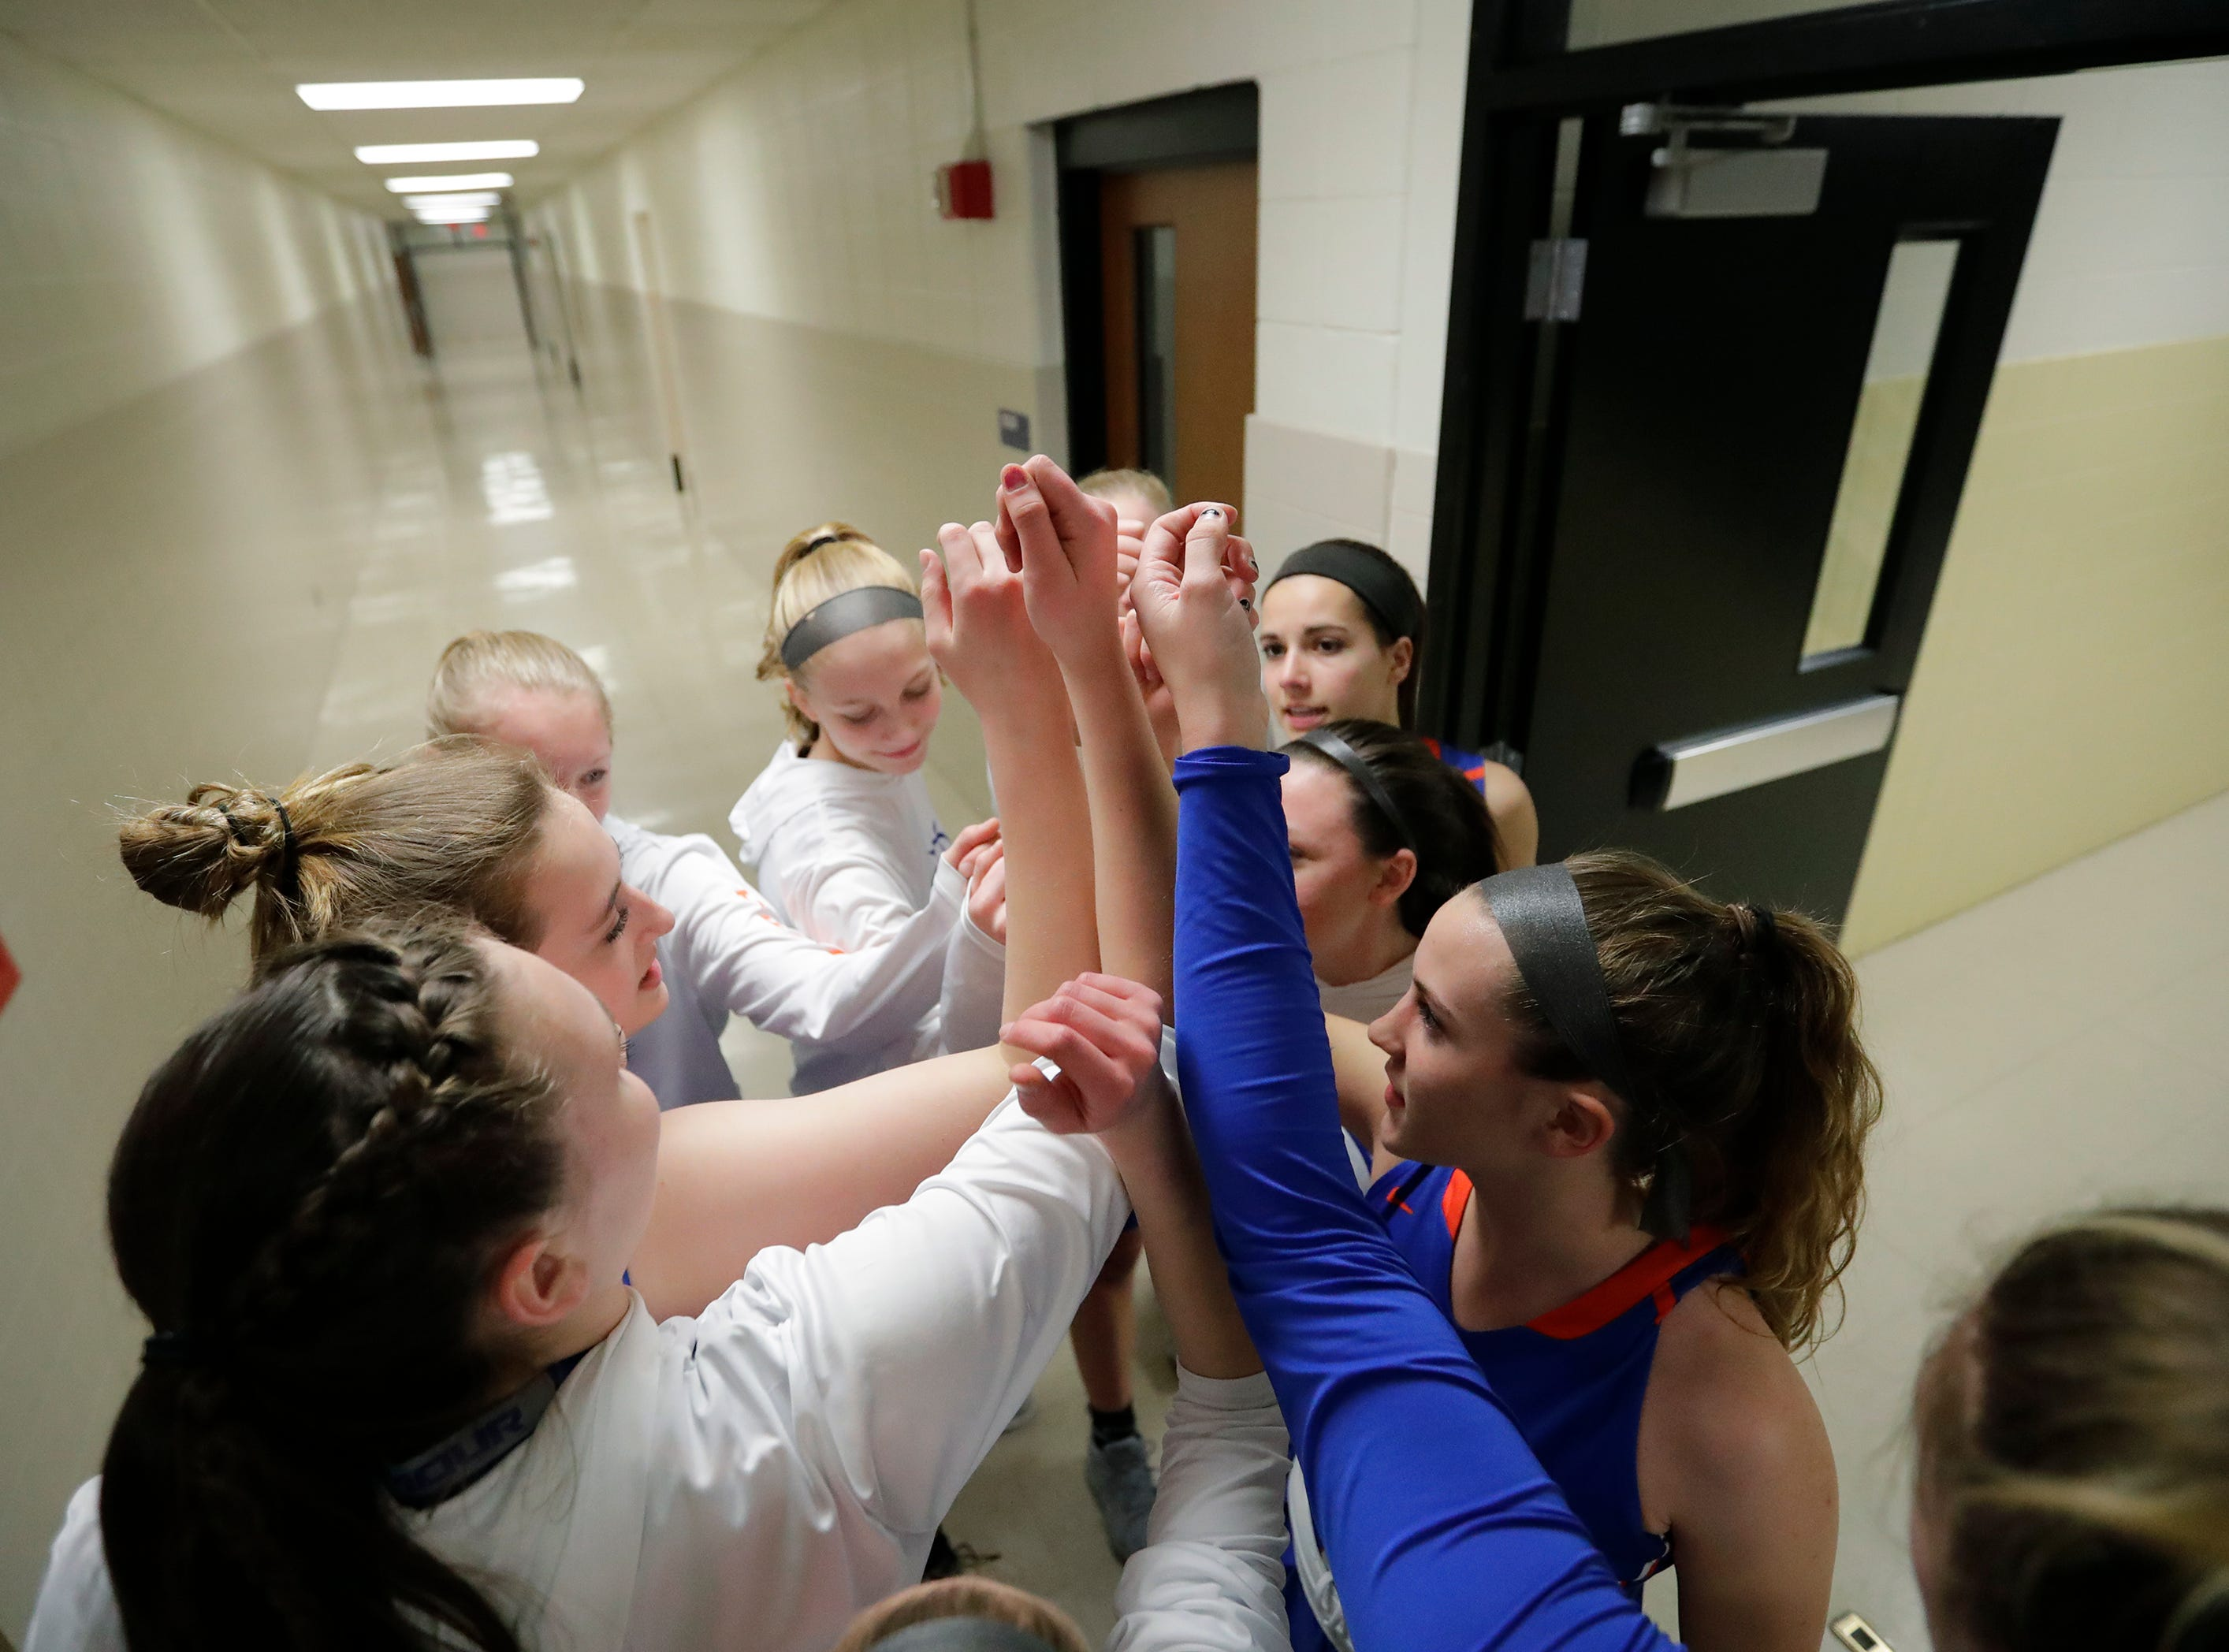 Appleton West High School's players get ready to take to the court against Appleton East High School moments before their girls basketball game Friday, January 11, 2019, at Appleton East High School in Appleton, Wis. 